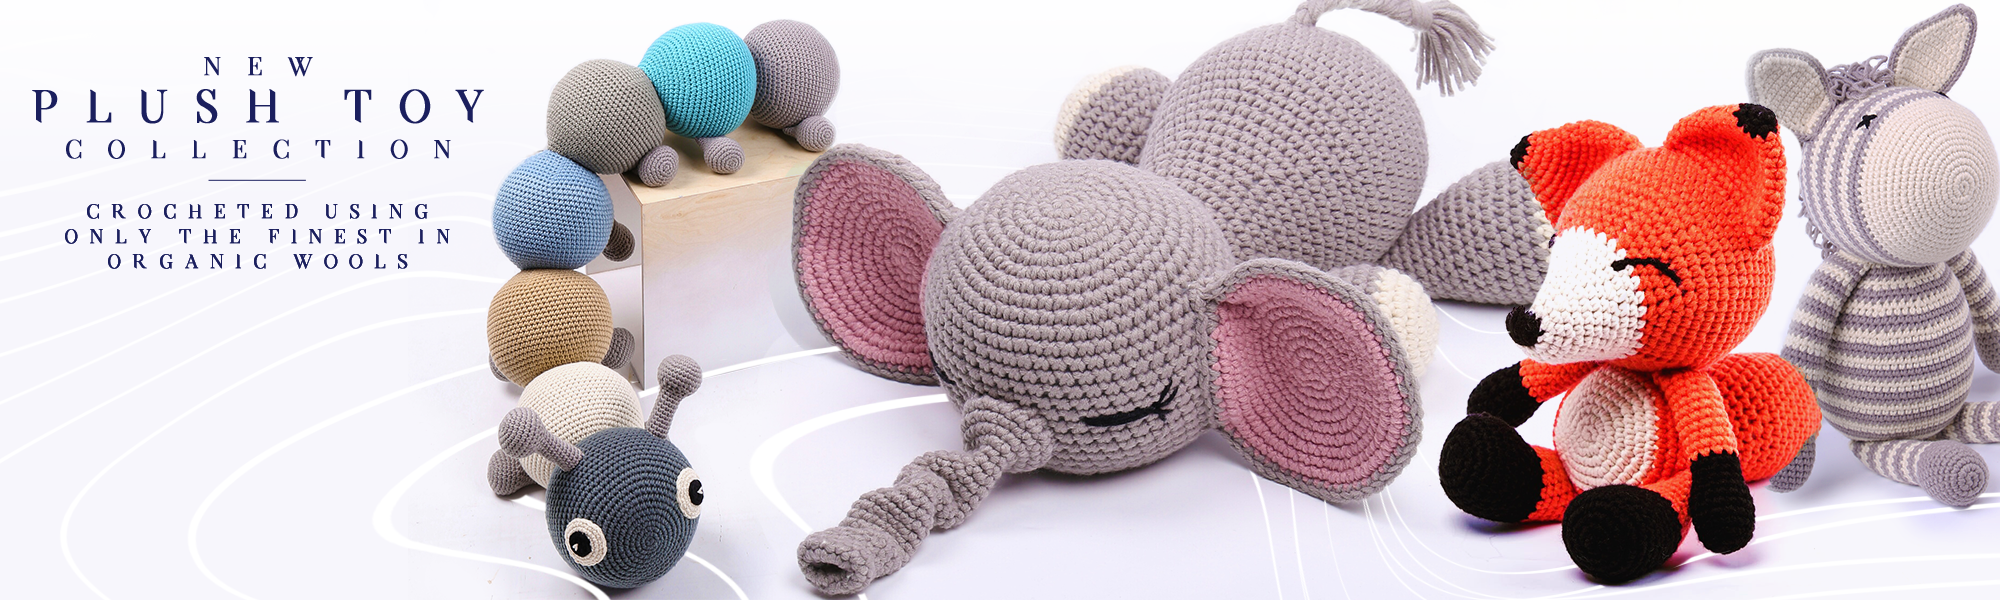 New Crochet Plush Range